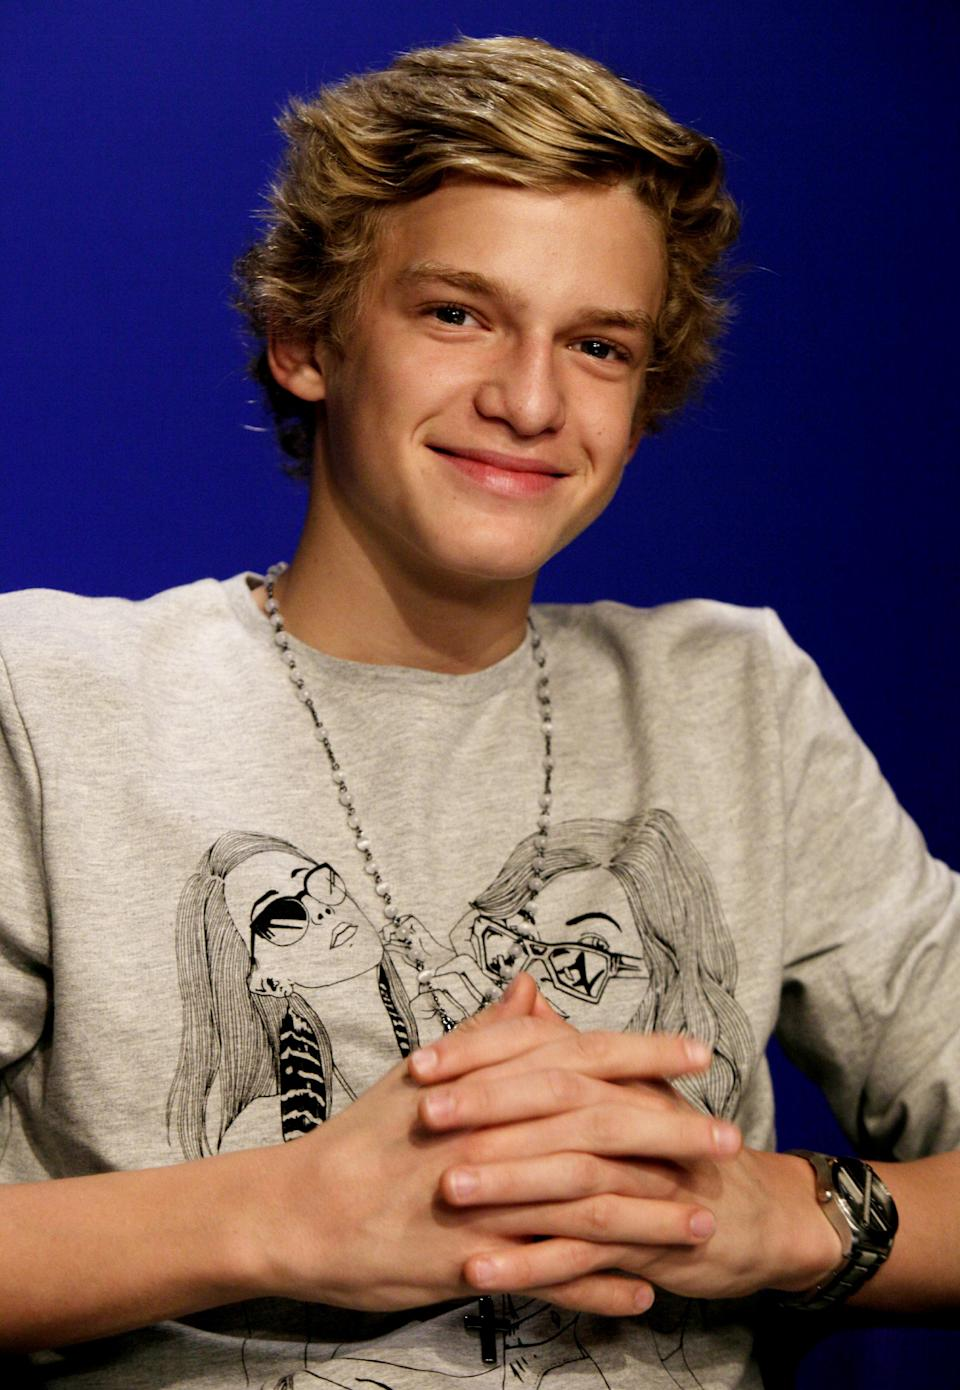 FILE - In this Sept. 28, 2011 file photo, singer Cody Simpson, 14, poses for photos during an interview in New York. Simpson is one of many young singers blazing the charts. (AP Photo/Richard Drew, file)